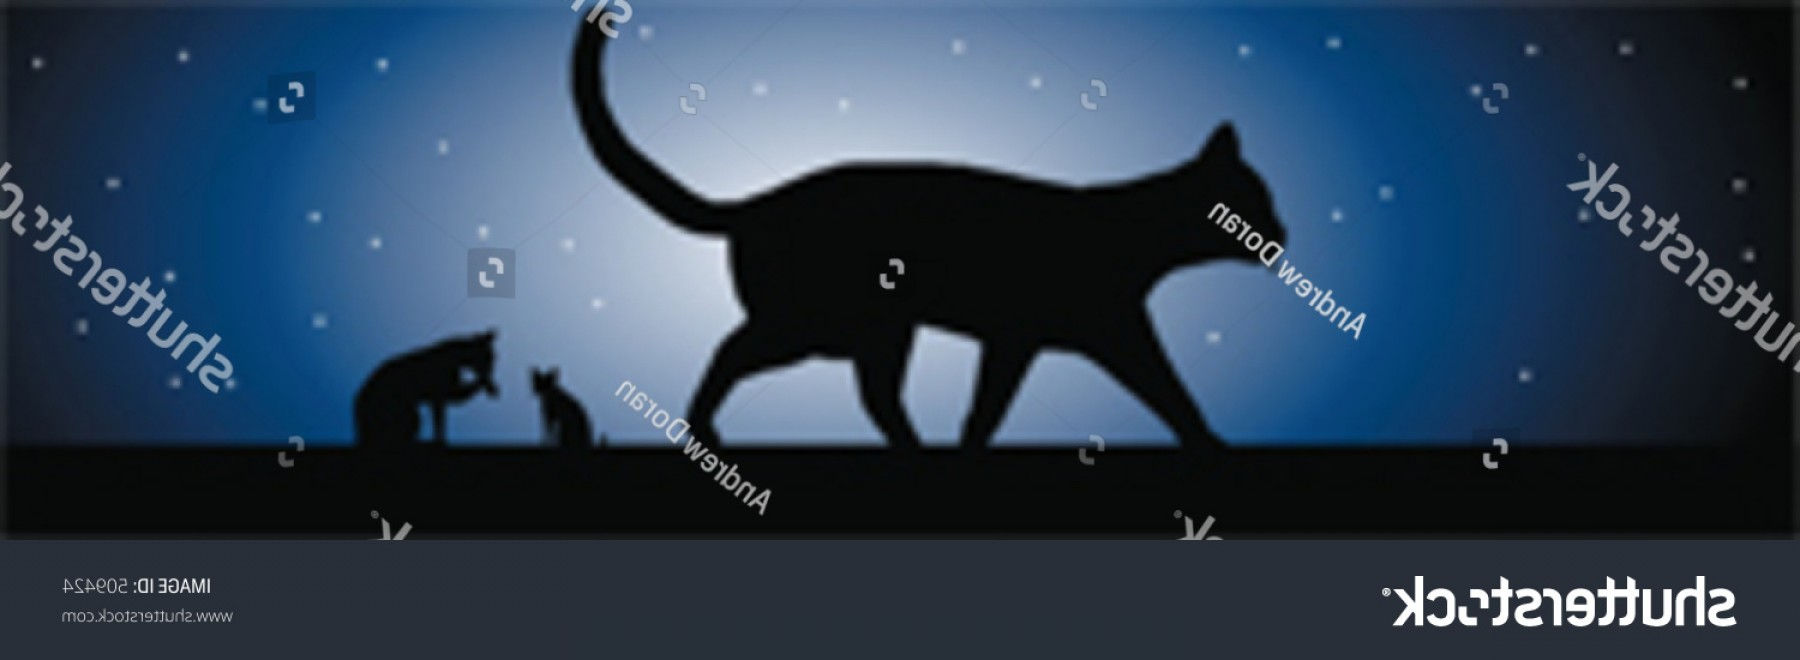 Vector Cats 3: Cats Moonlight Vector Image Sillhouetted